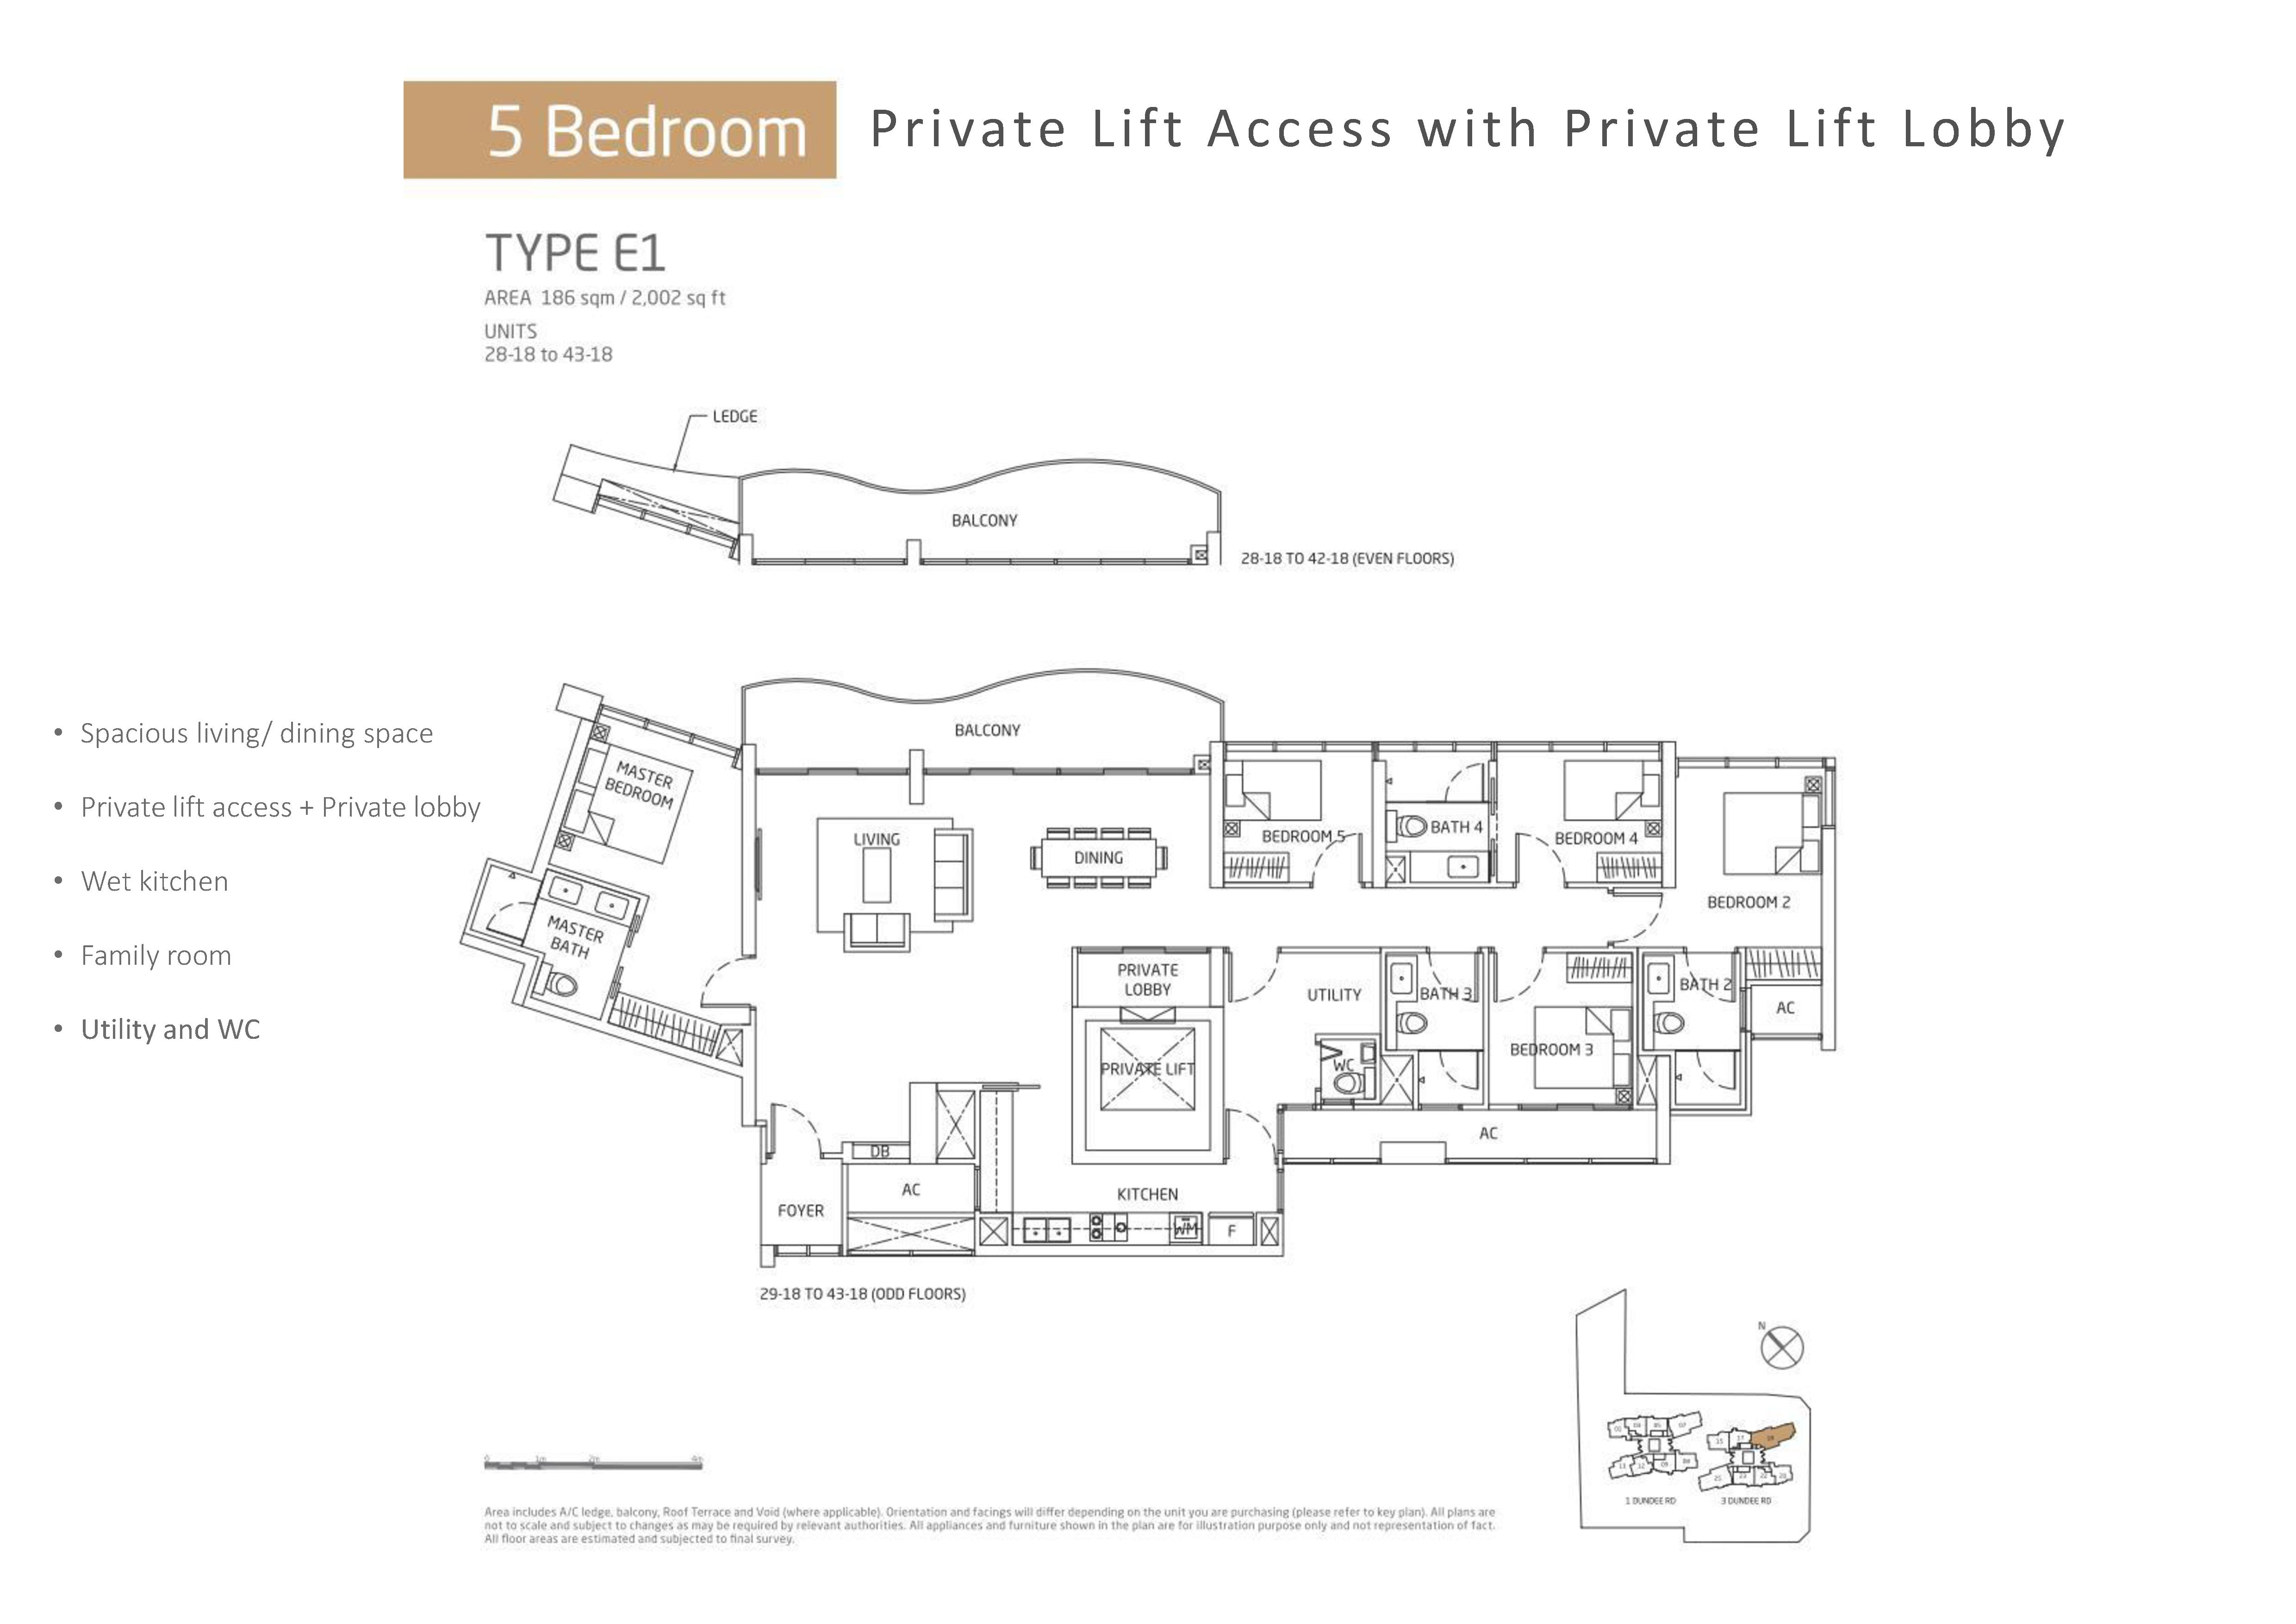 Queens Peak 5 Bedroom Floor Plans Type E1